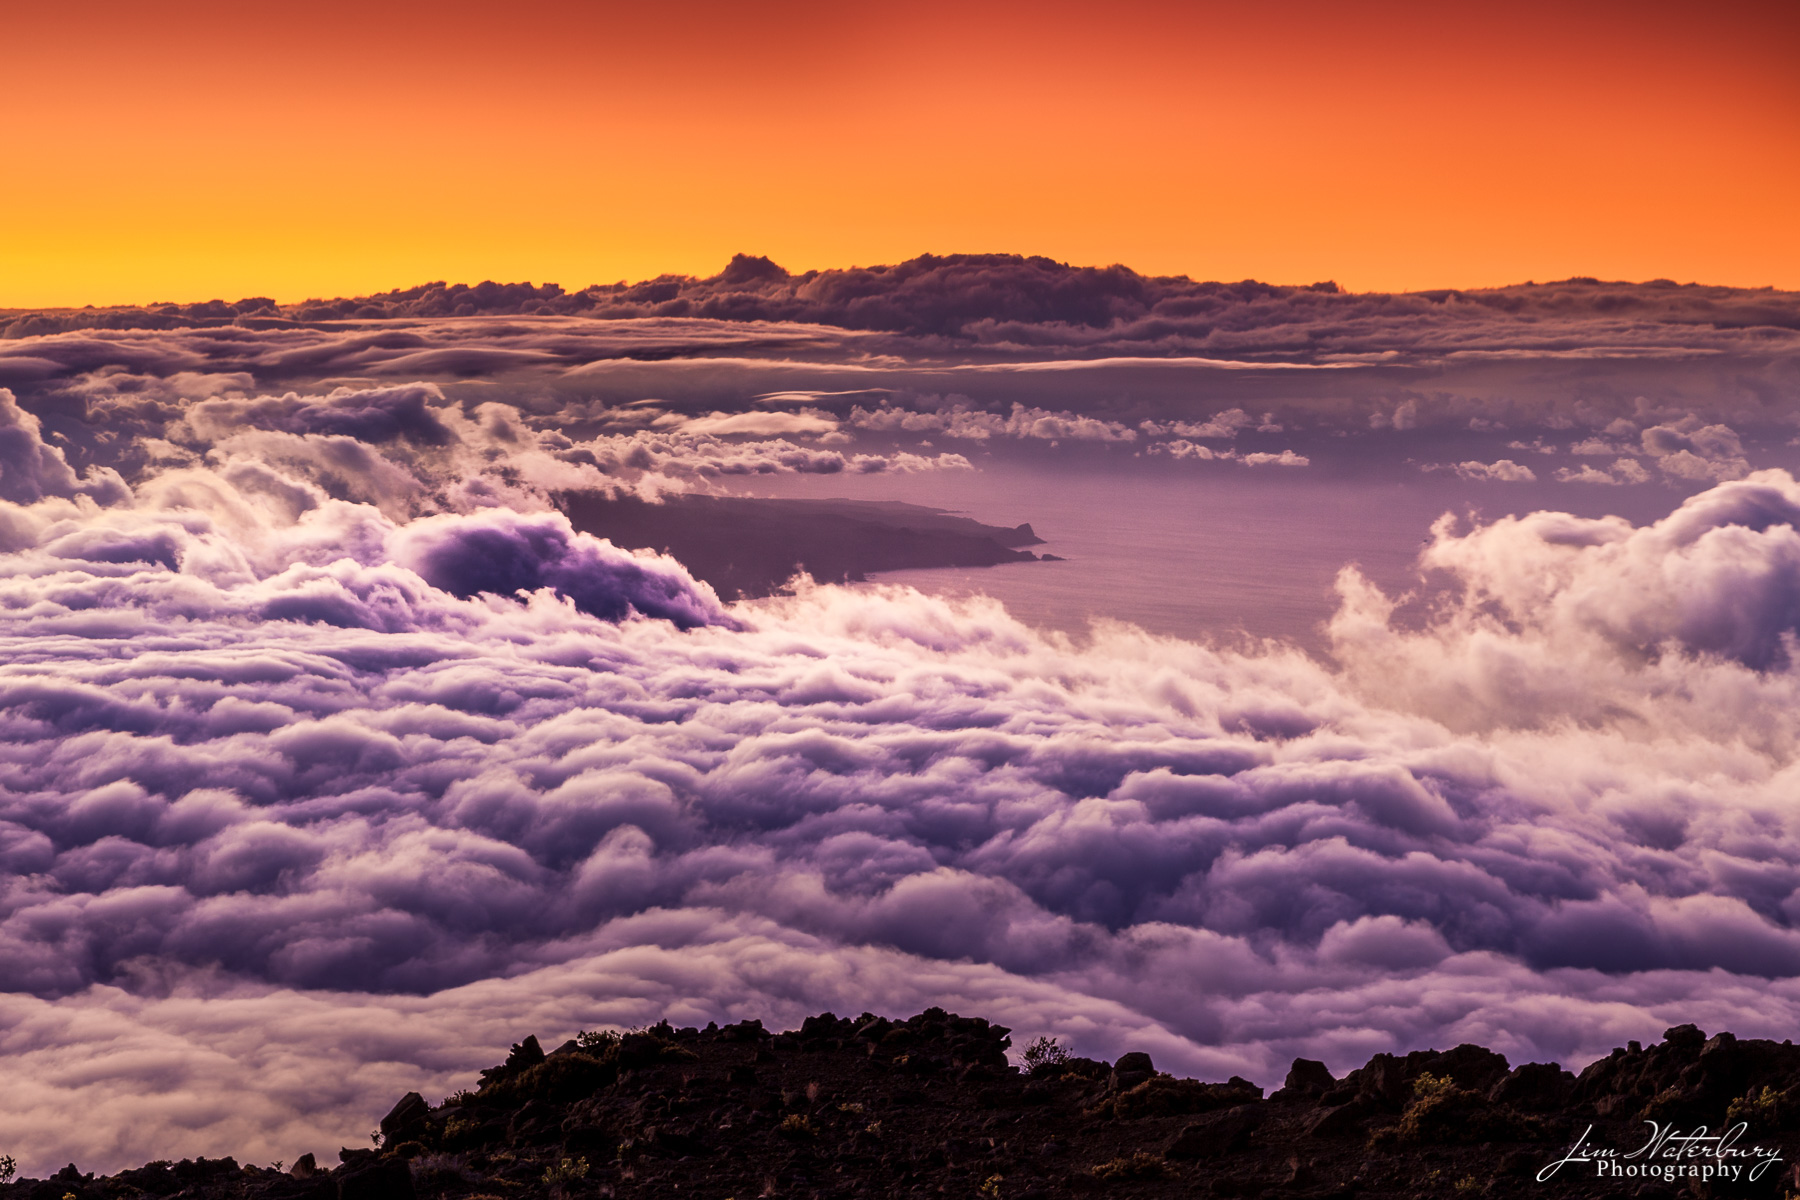 Hawaii, Maui, sunset view, Haleakala, photo